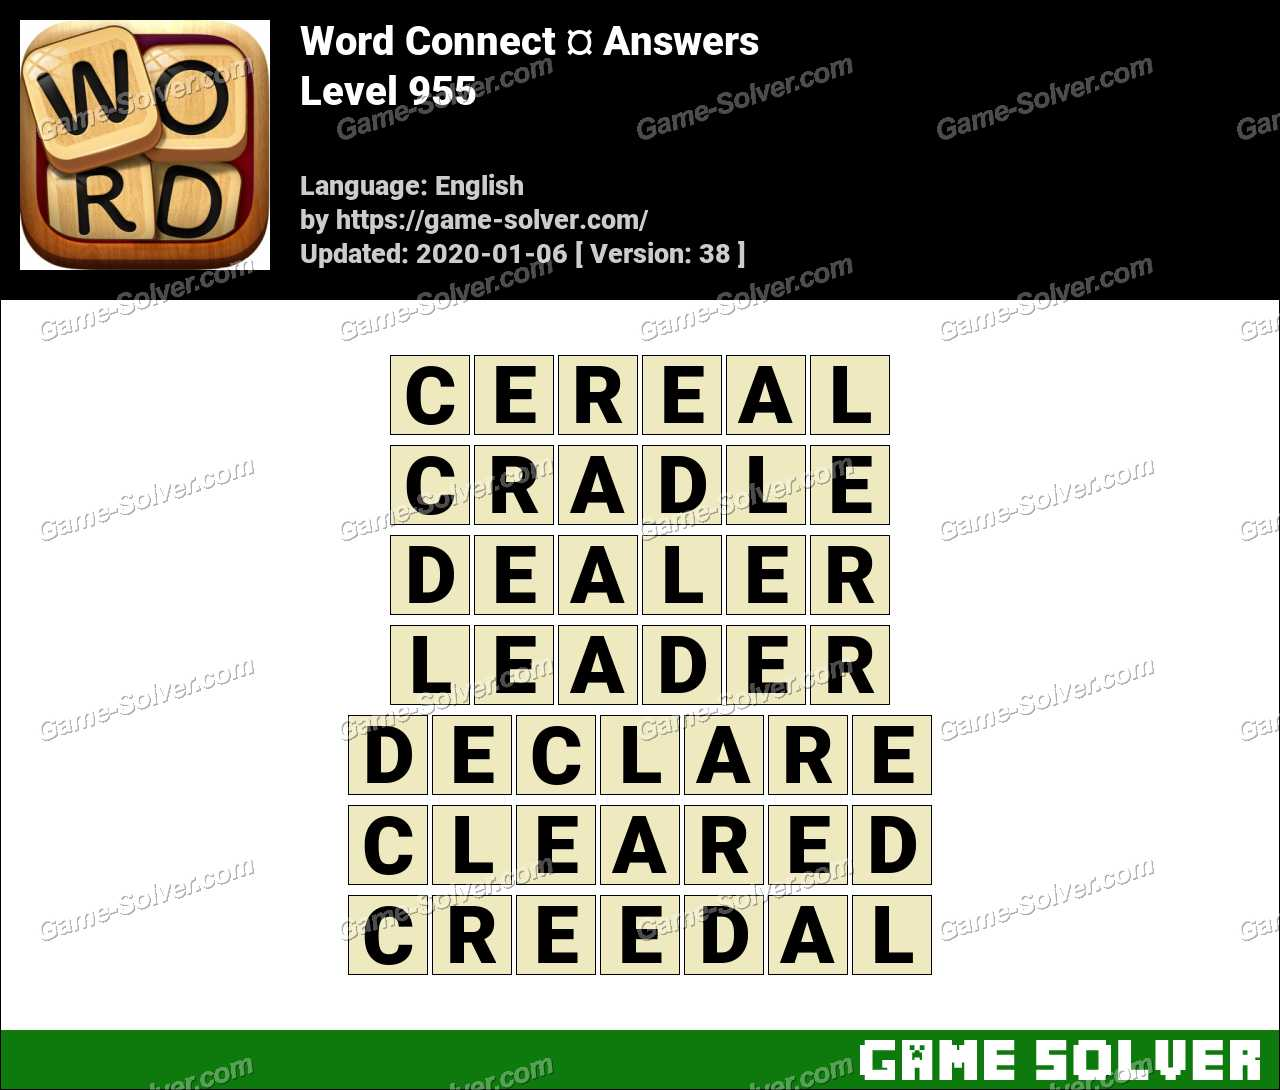 Word Connect Level 955 Answers